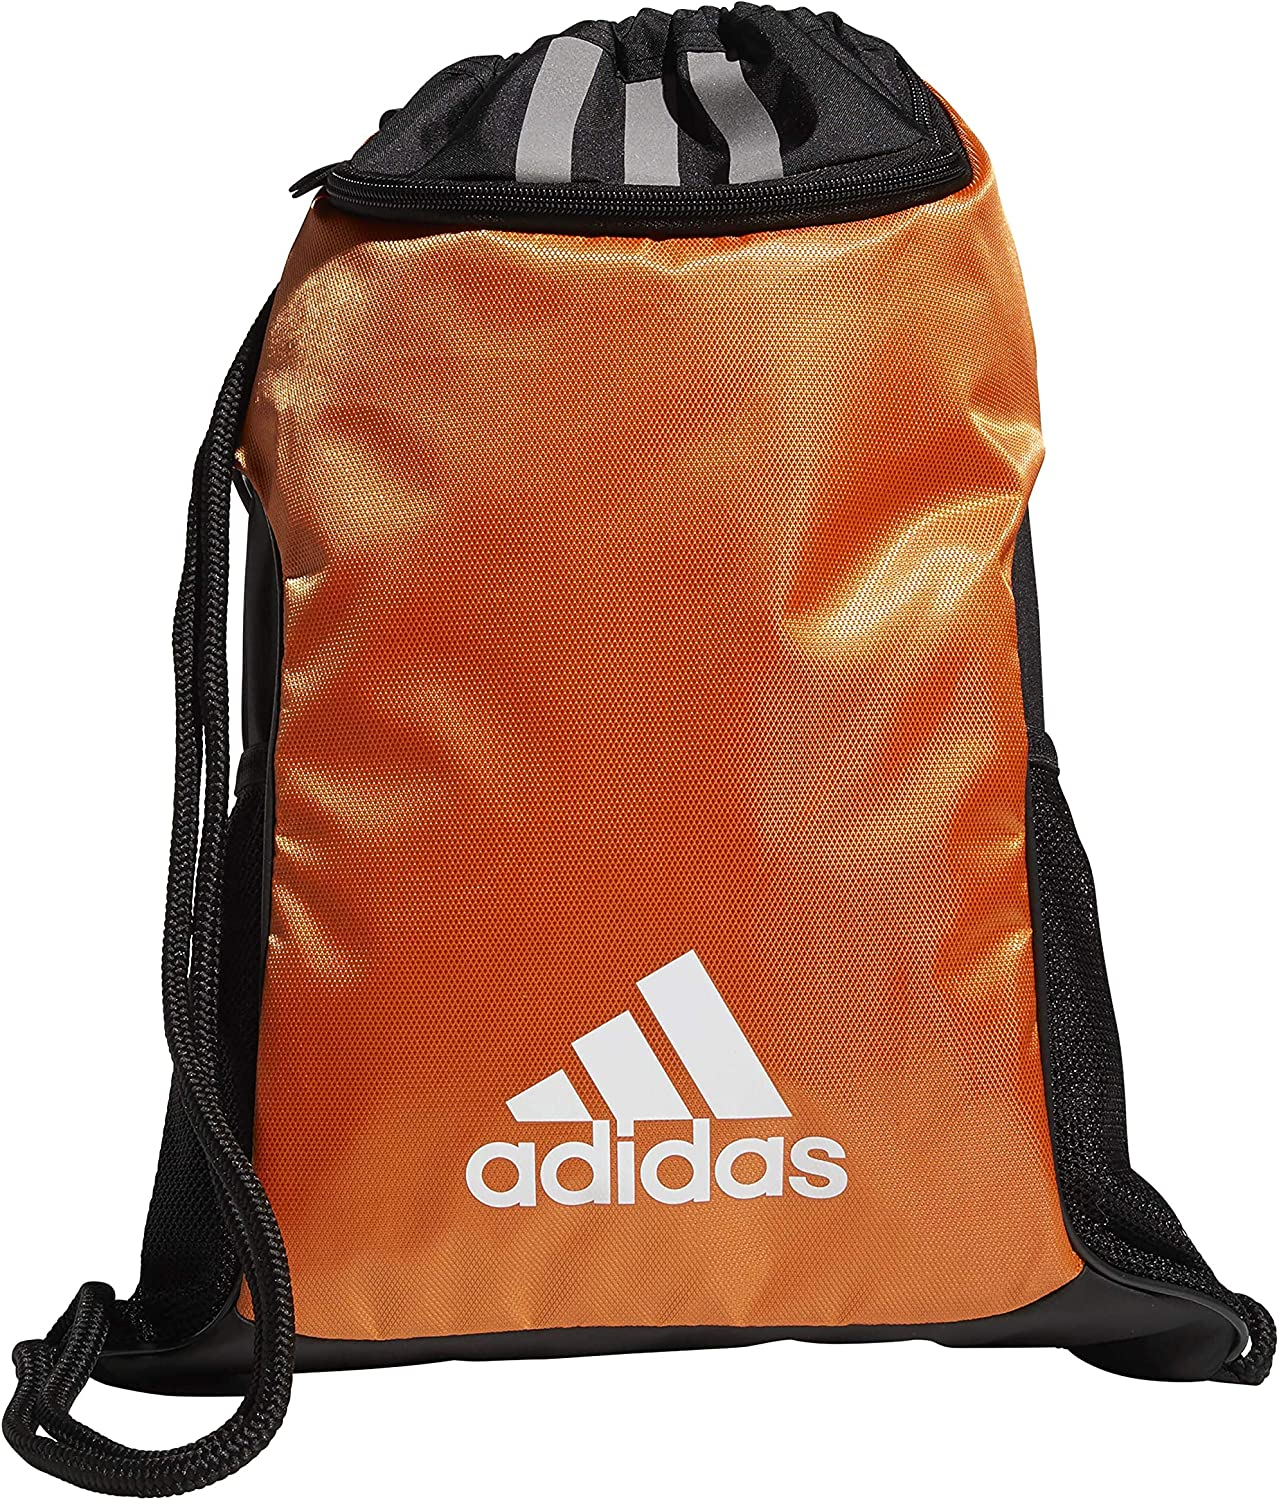 adidas Unisex-Adult Team Issue Ii Sackpack